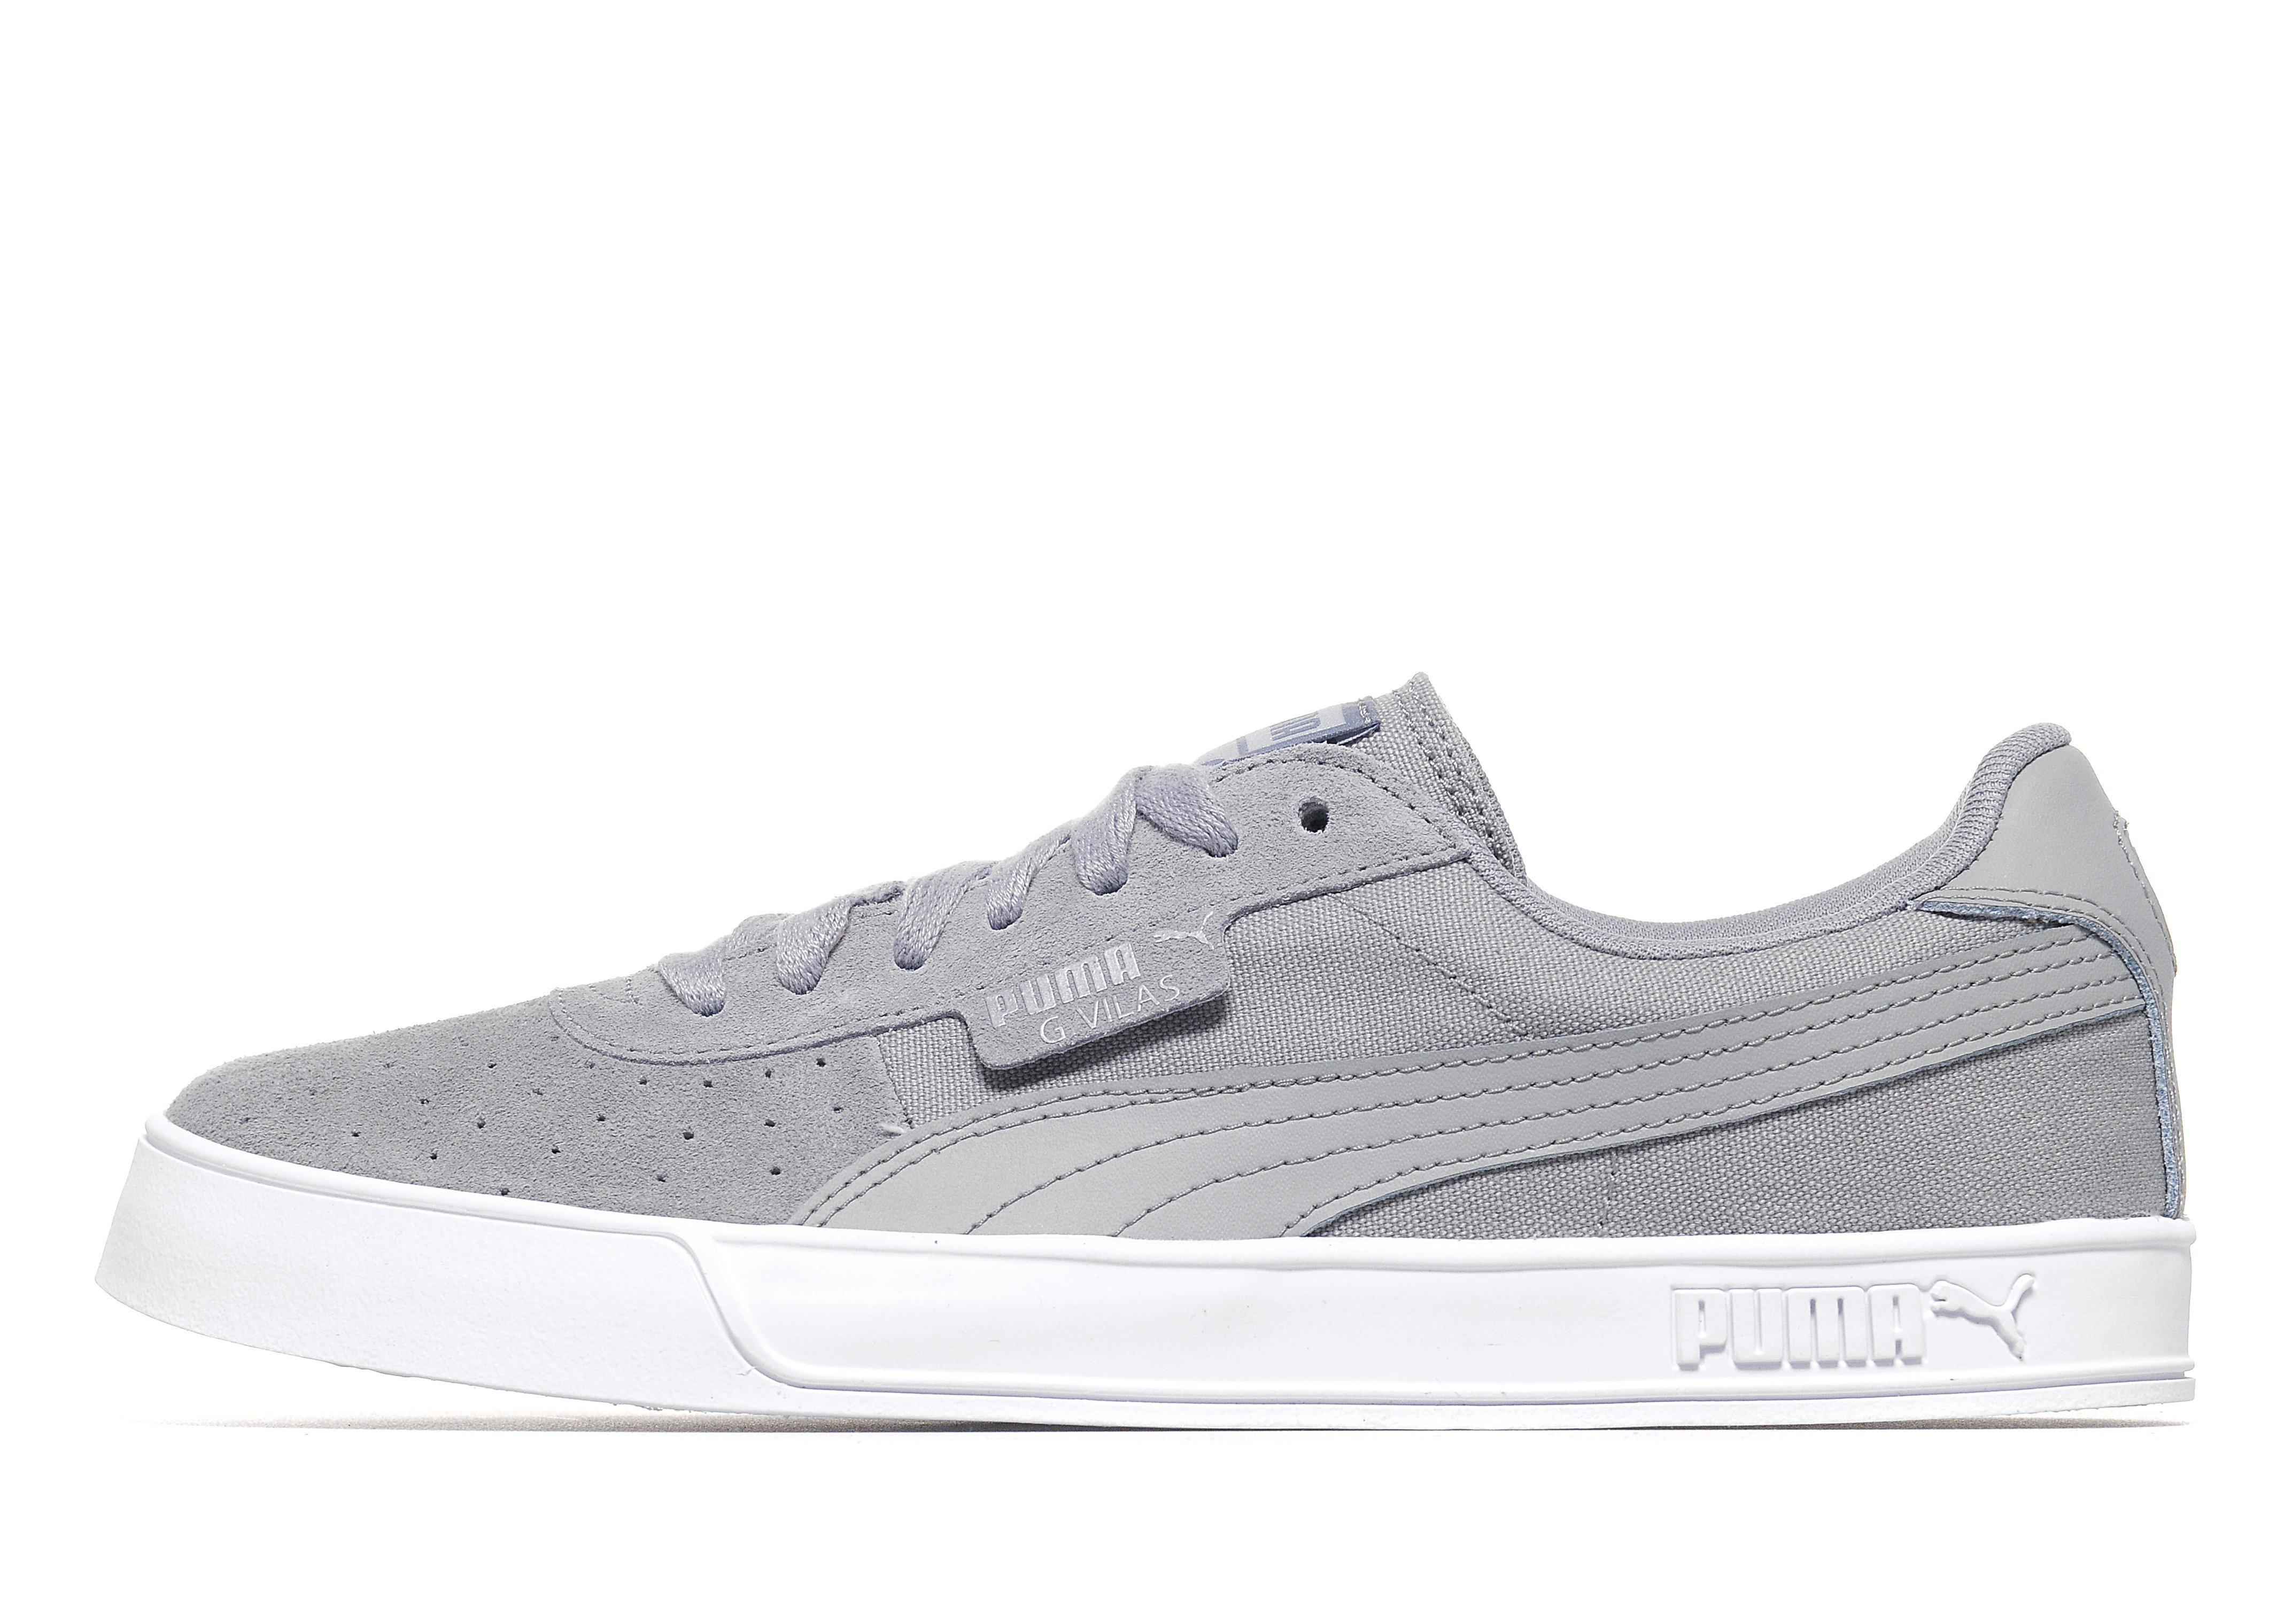 fad72ad038b Lyst - PUMA G. Vilas Vulc in White for Men